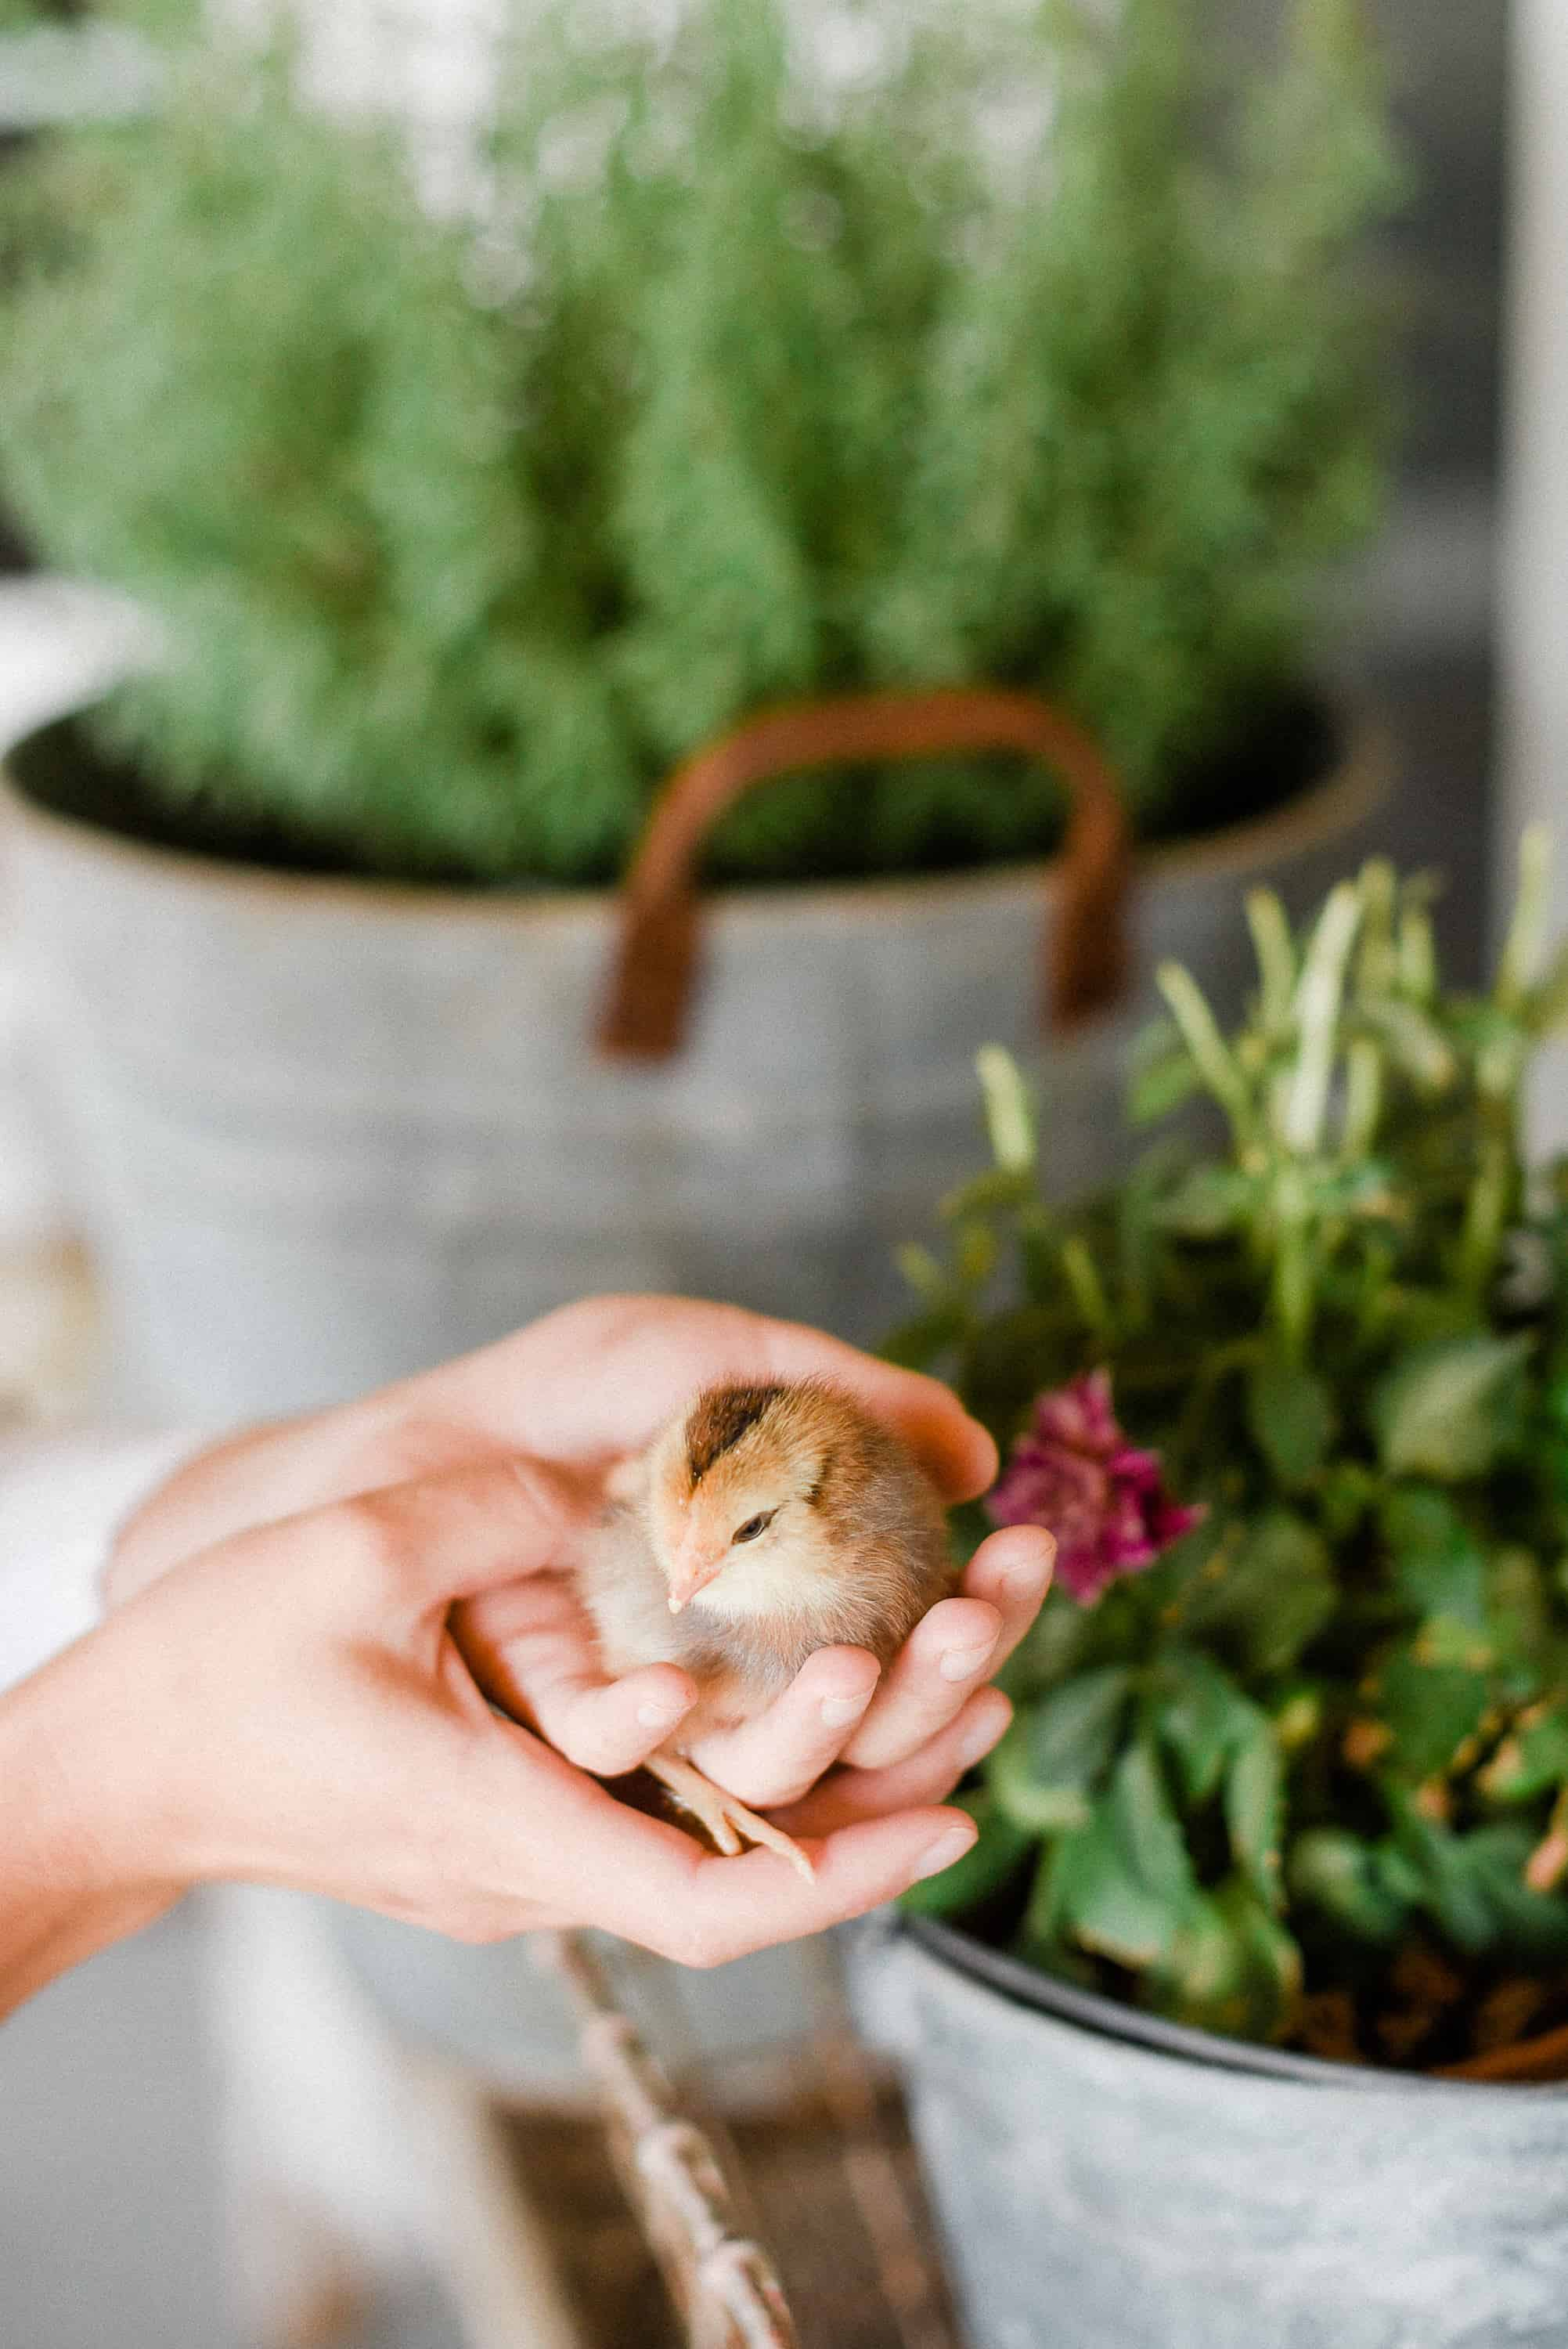 If you plan on raising backyard chickens, chances are, you'll start with chicks. Here is everything you need to know to begin your backyard chicken journey – starting with raising chicks!